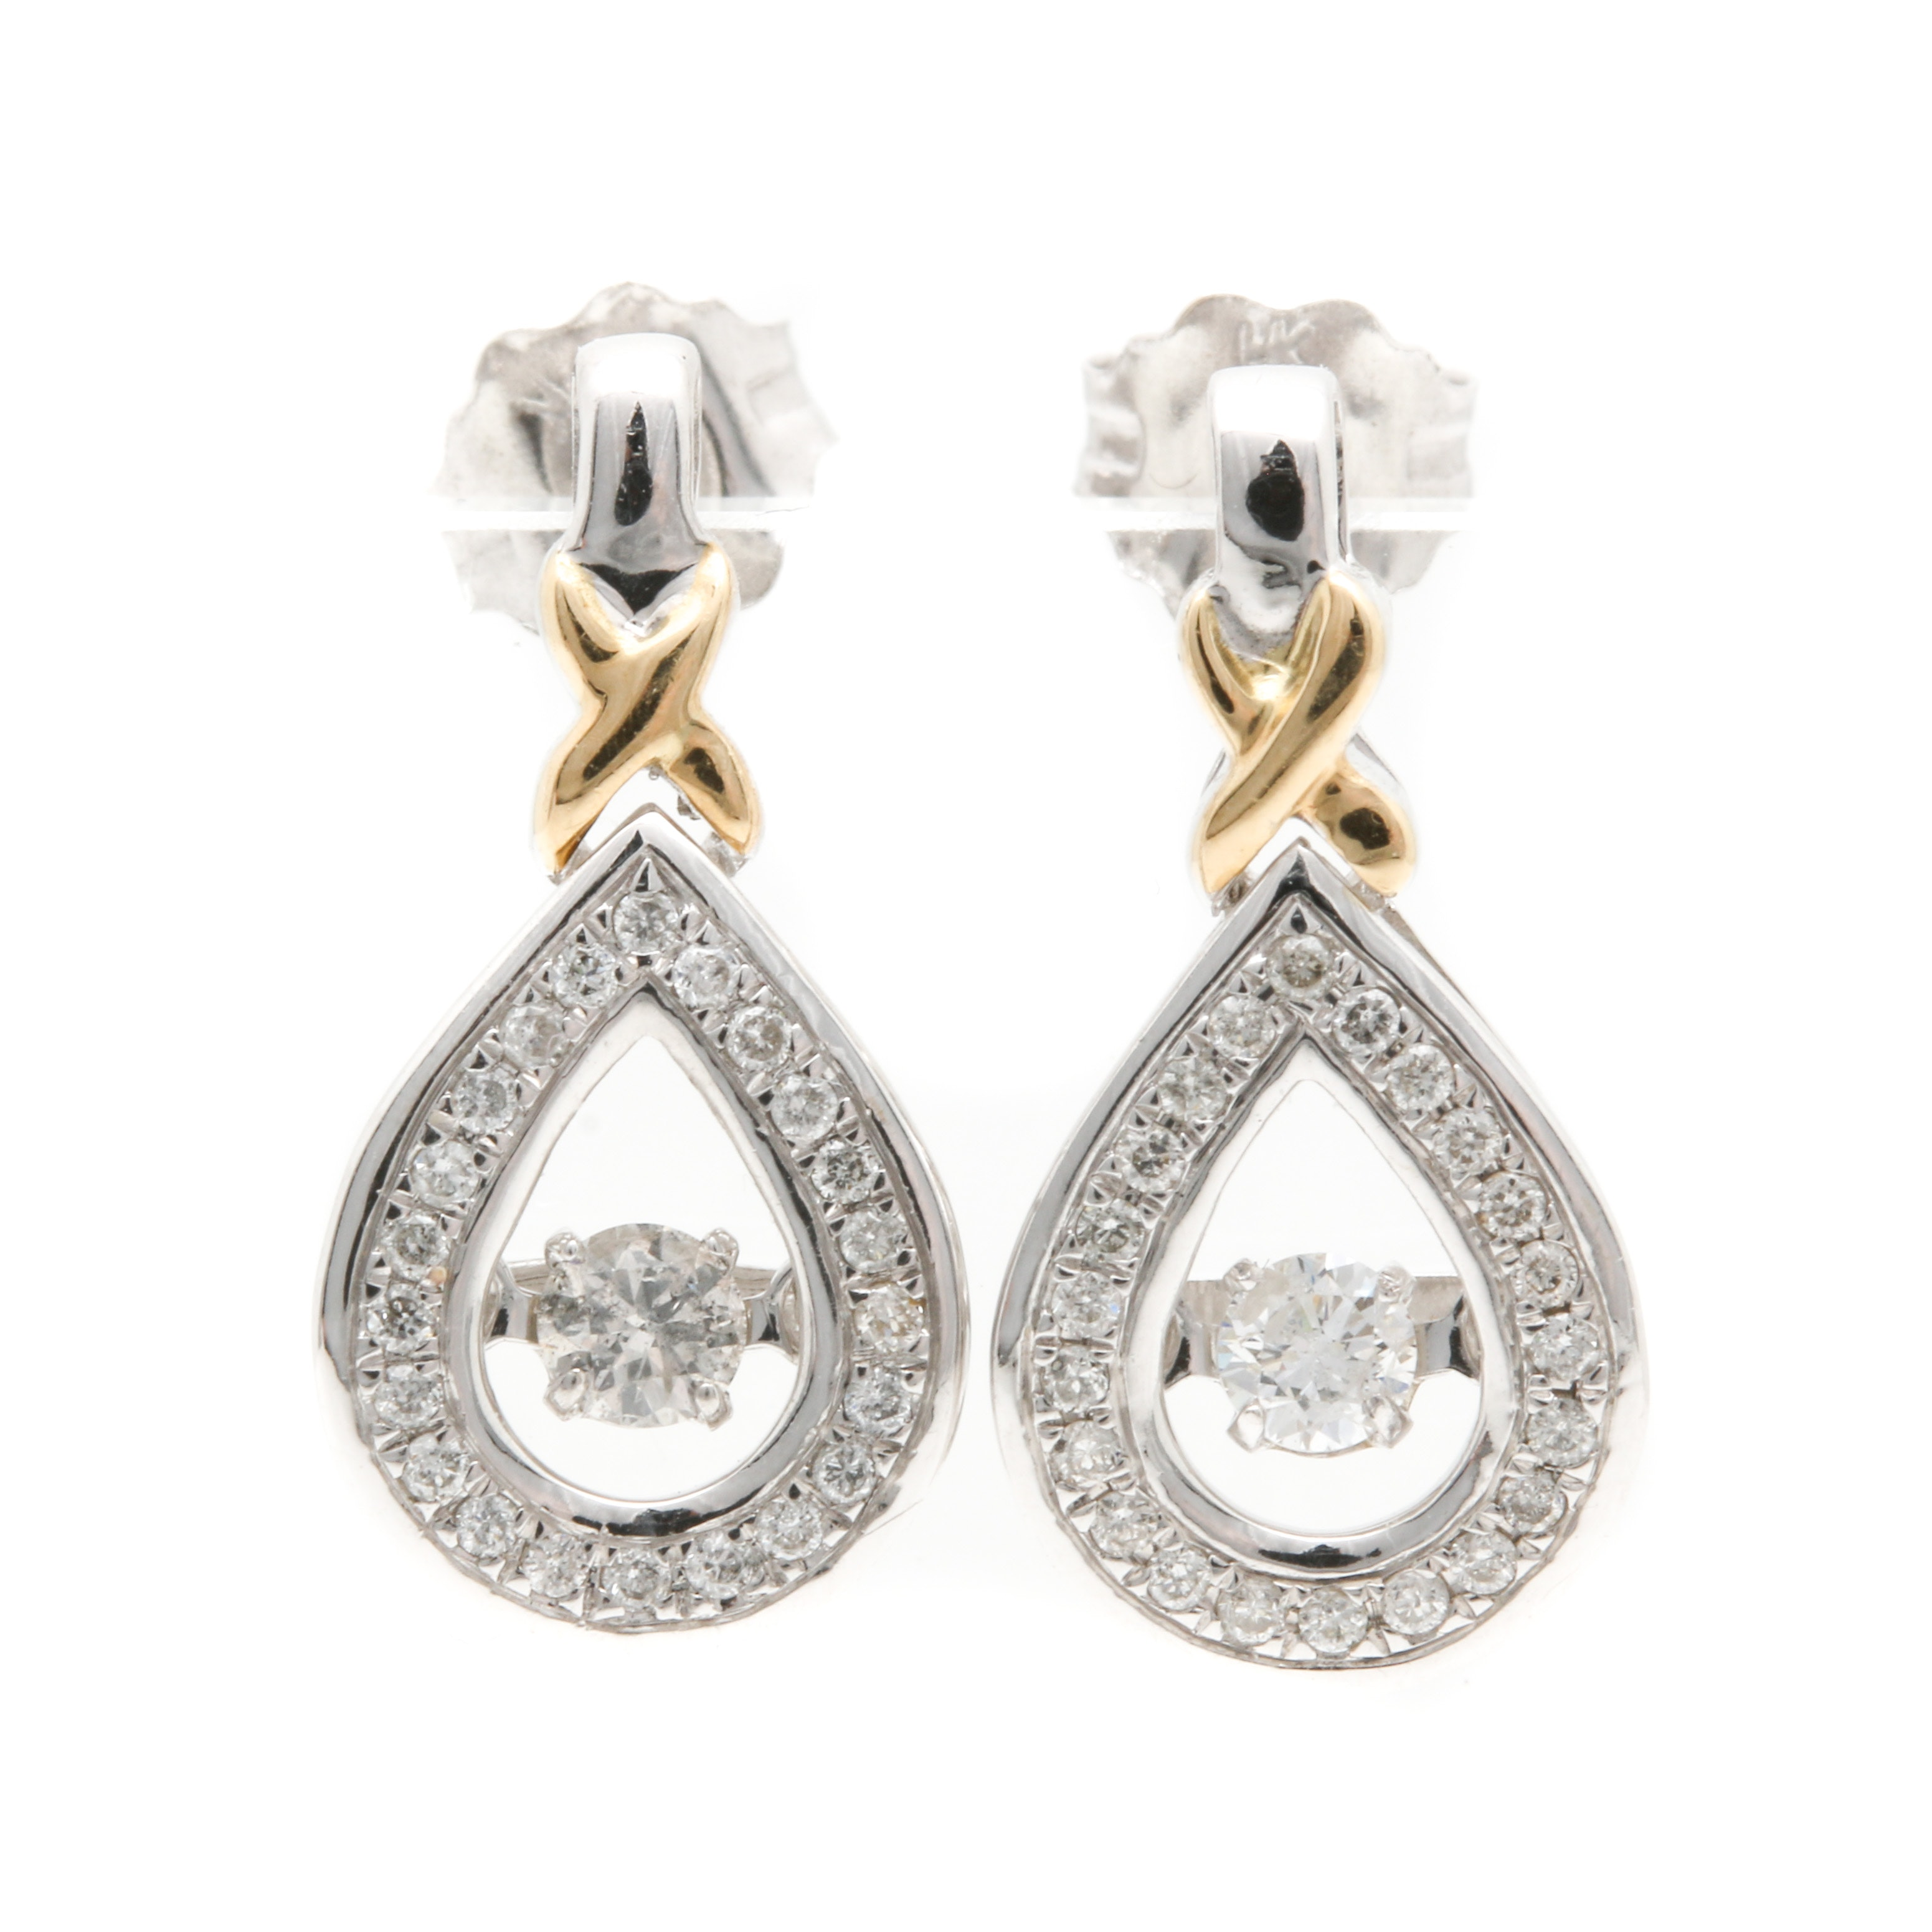 10K White Gold Diamond Stud Earrings With 10K Yellow Gold Accents